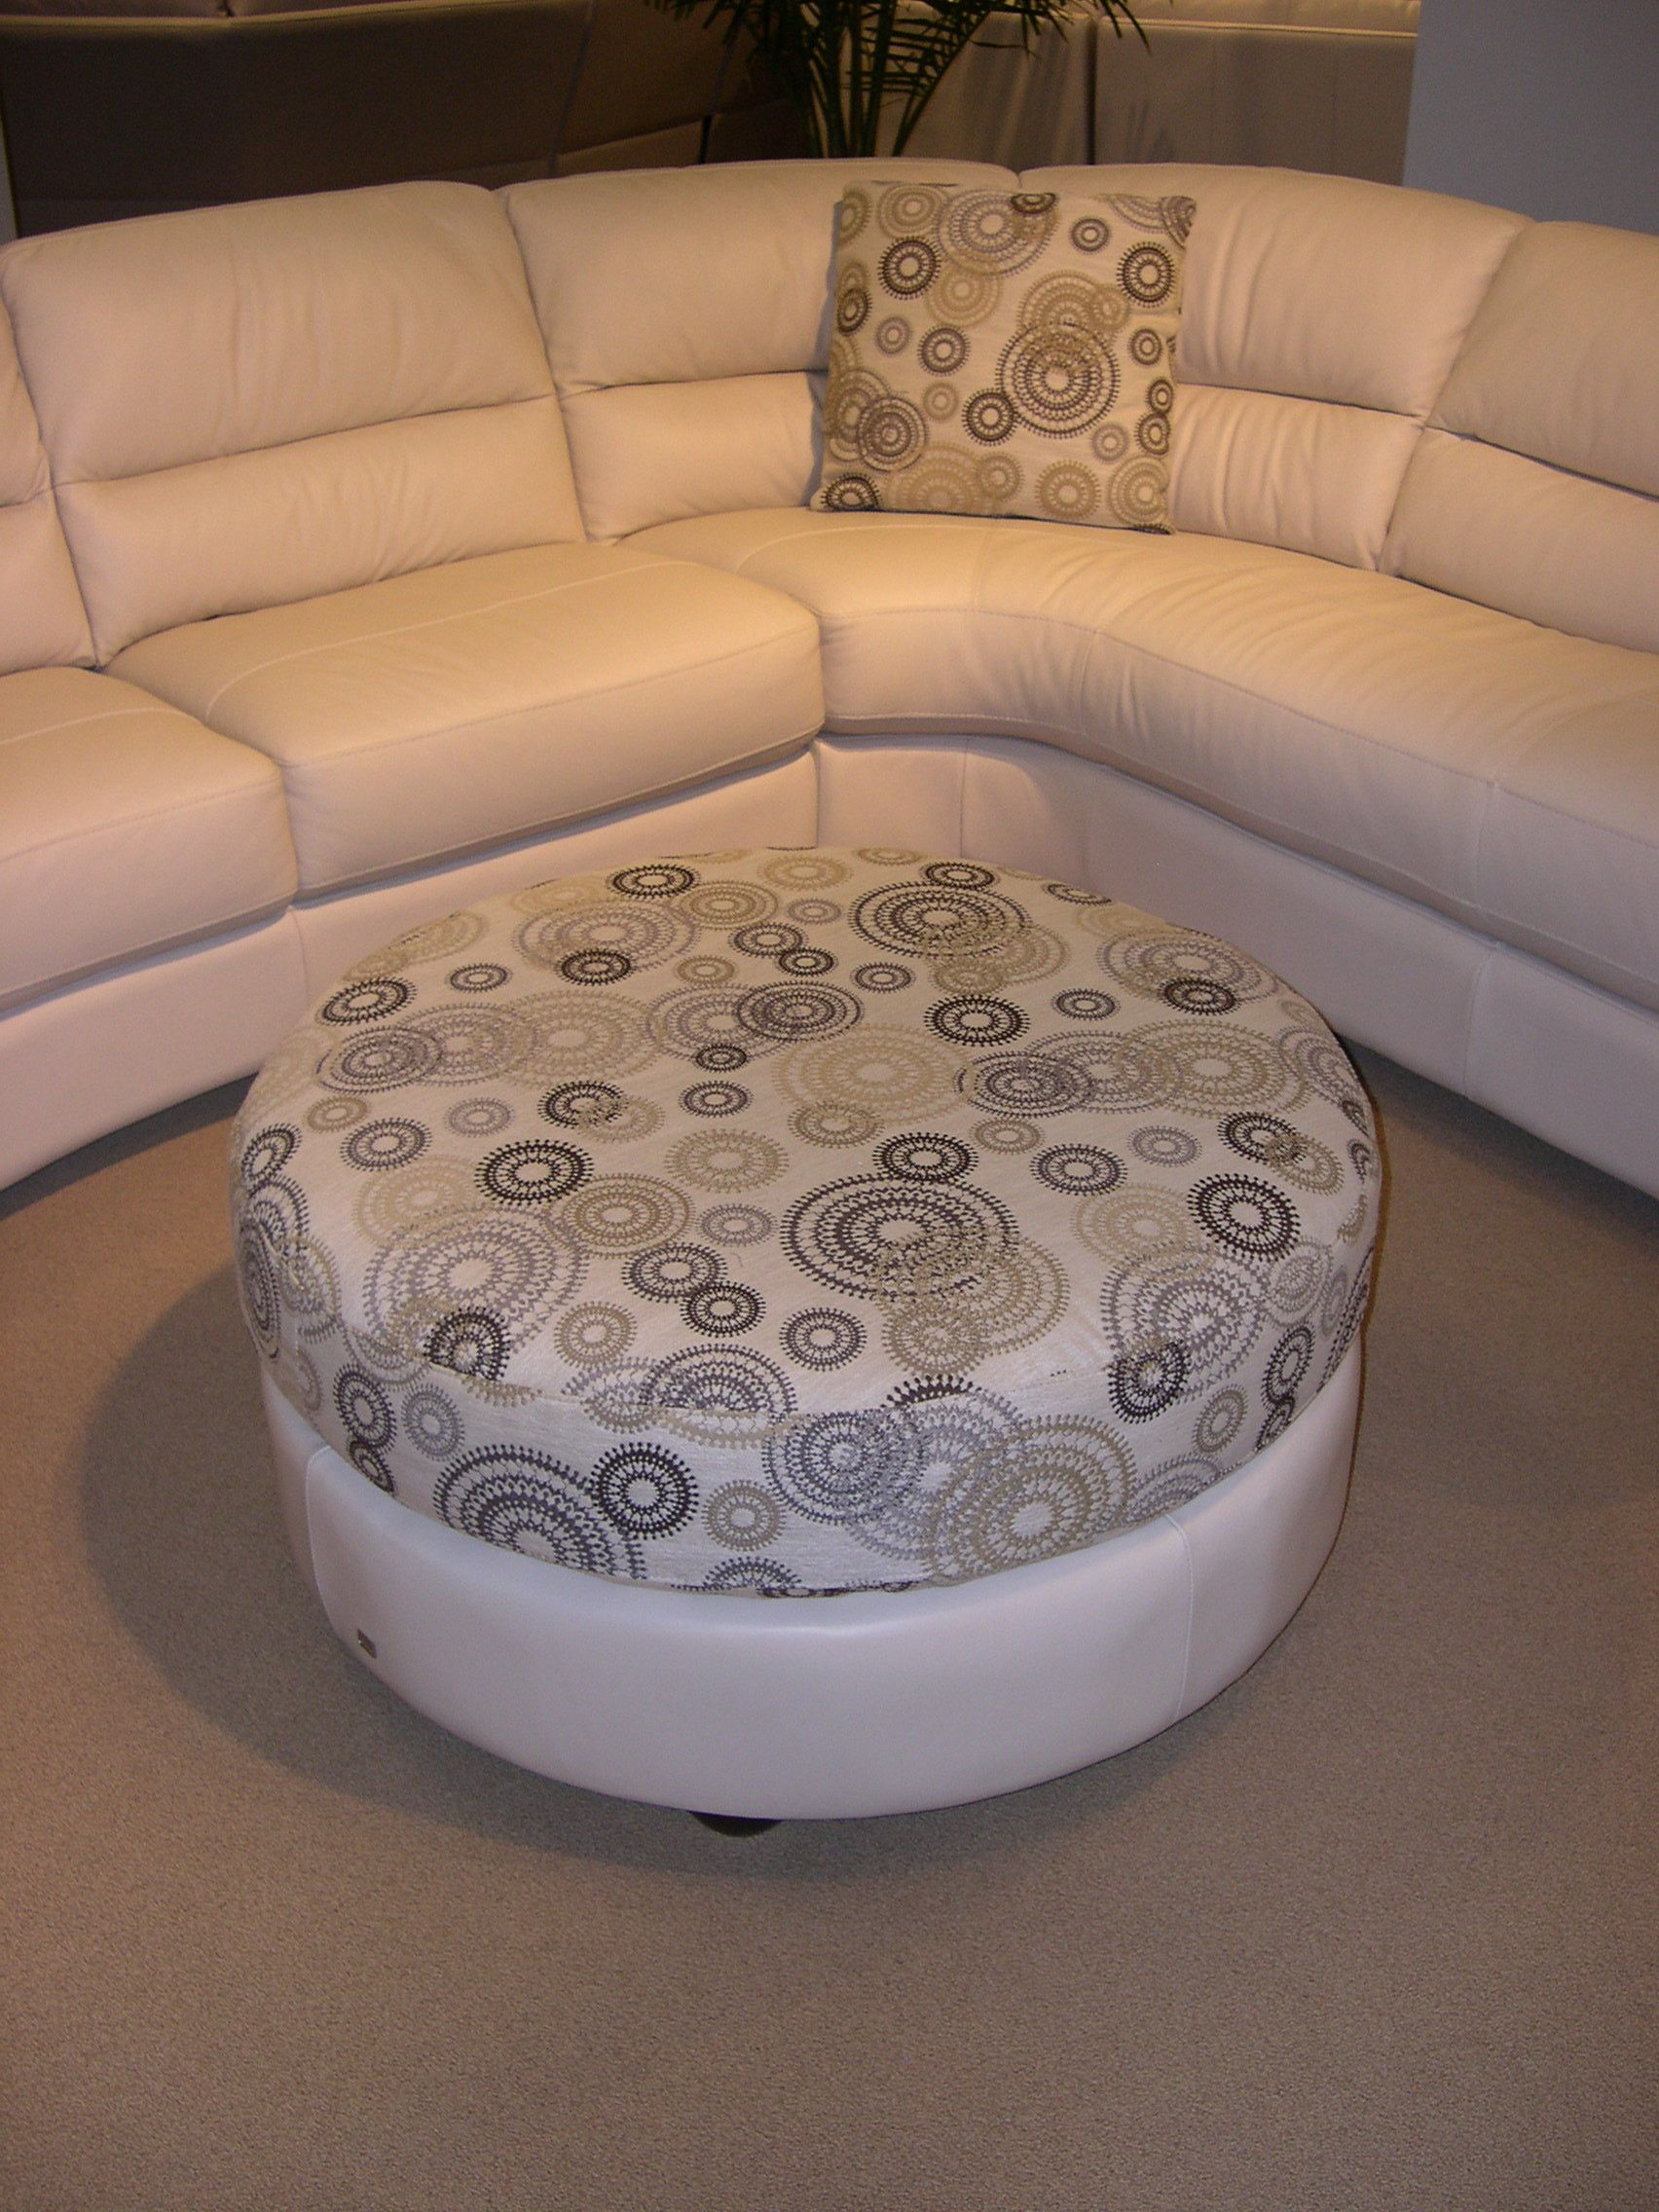 htl sofa range diy murphy bed over leather sectional with round ottoman and accent pillows perfect for urban side of portland